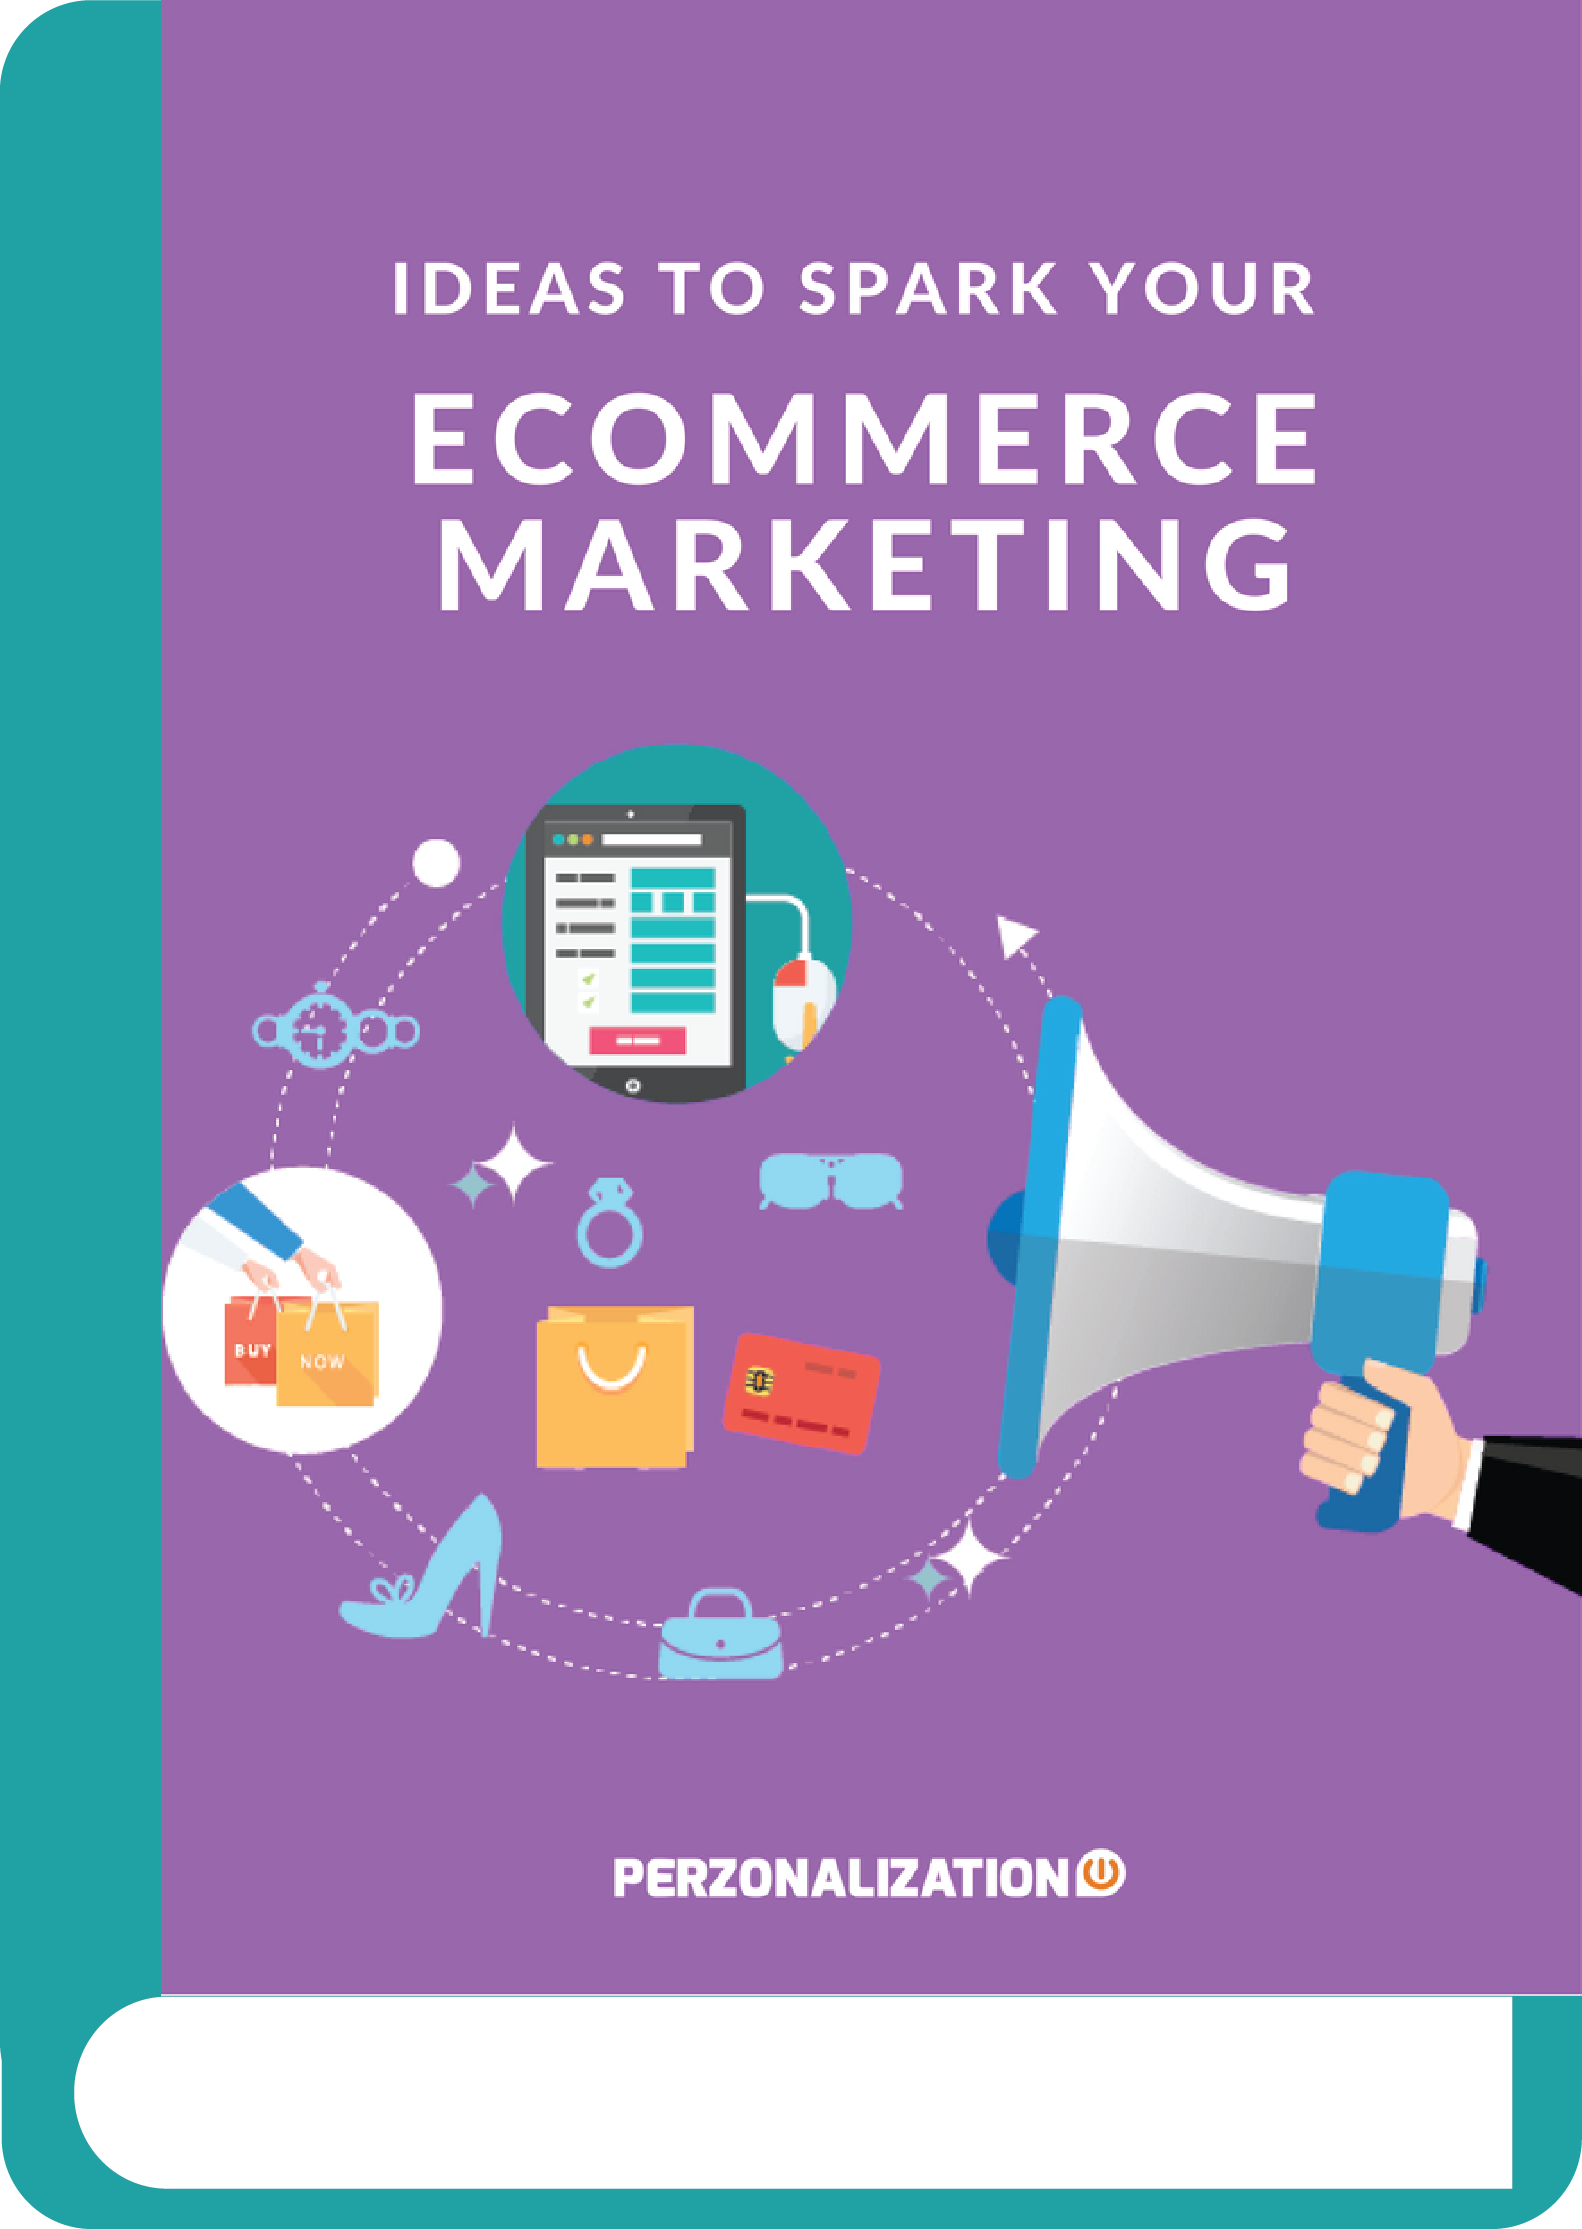 In this free eBook, we have listed some creative and pocket-friendly ways in which eCommerce owners can do eCommerce marketing for their stores